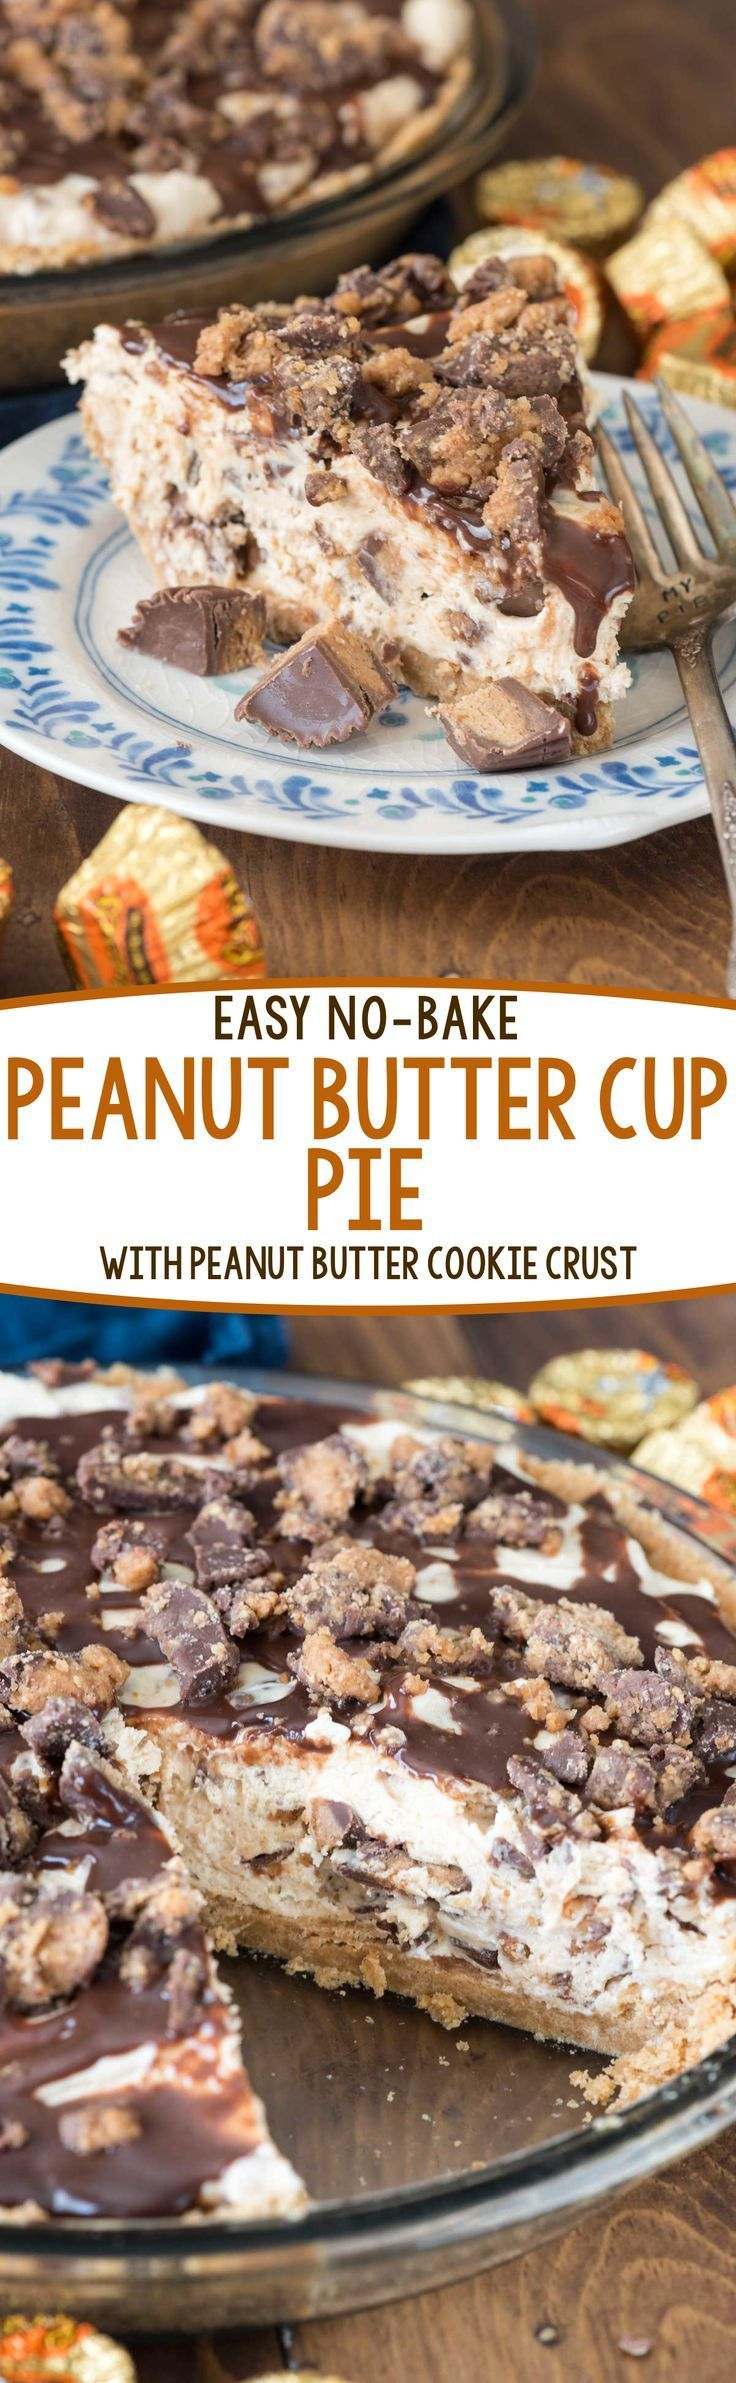 Food Photography No Bake Peanut Butter Cup Pie Food Photography No Bake Peanut Butter Cup Pie